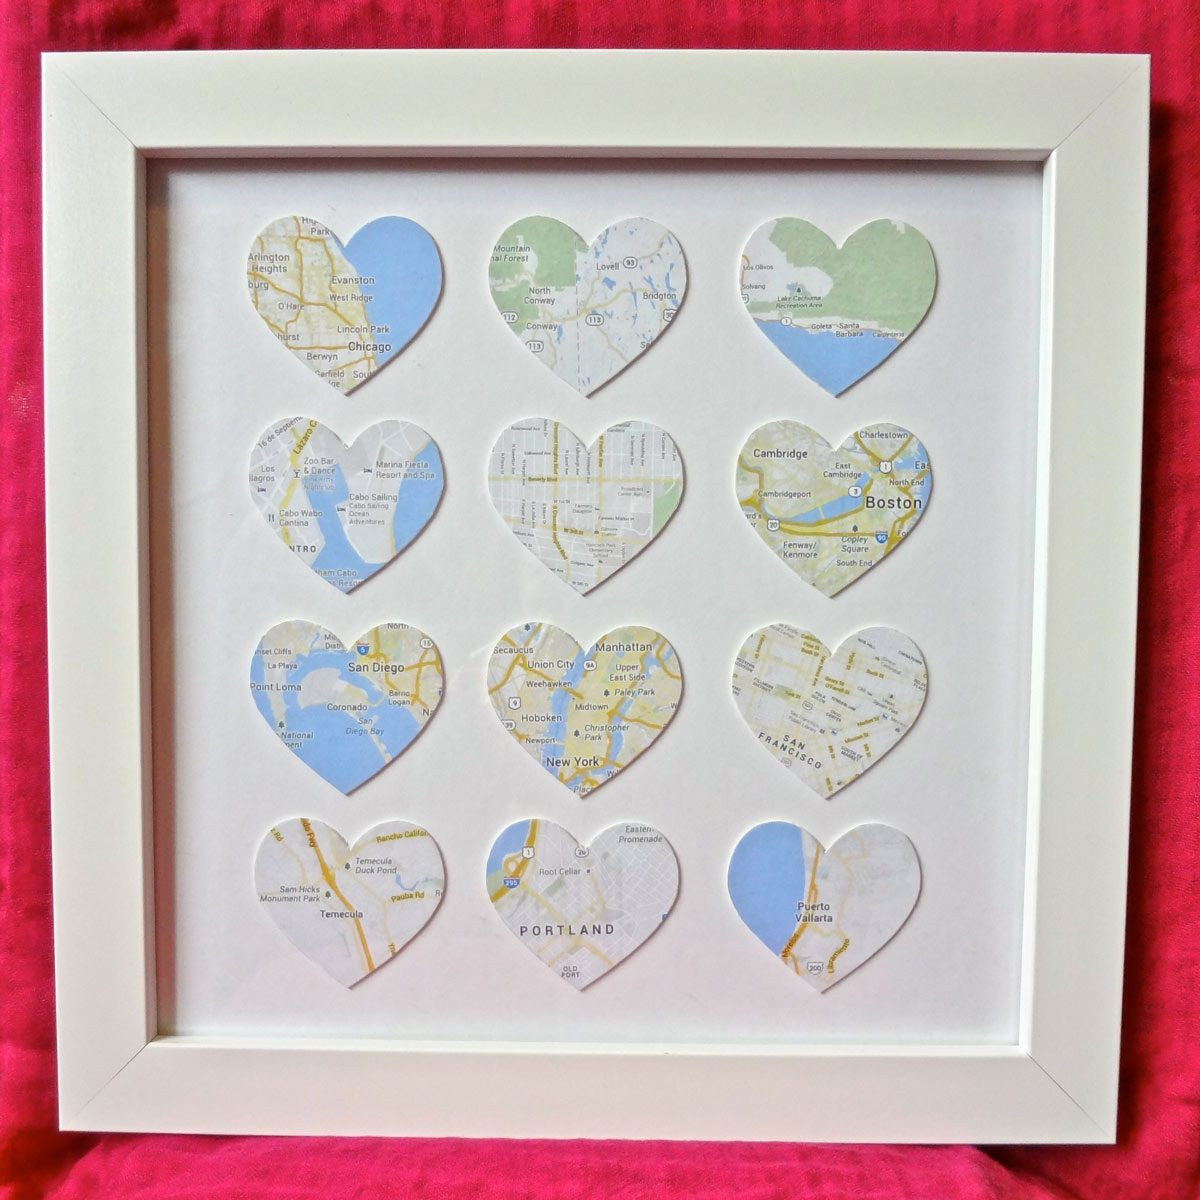 places-we've-been heart shaped map art